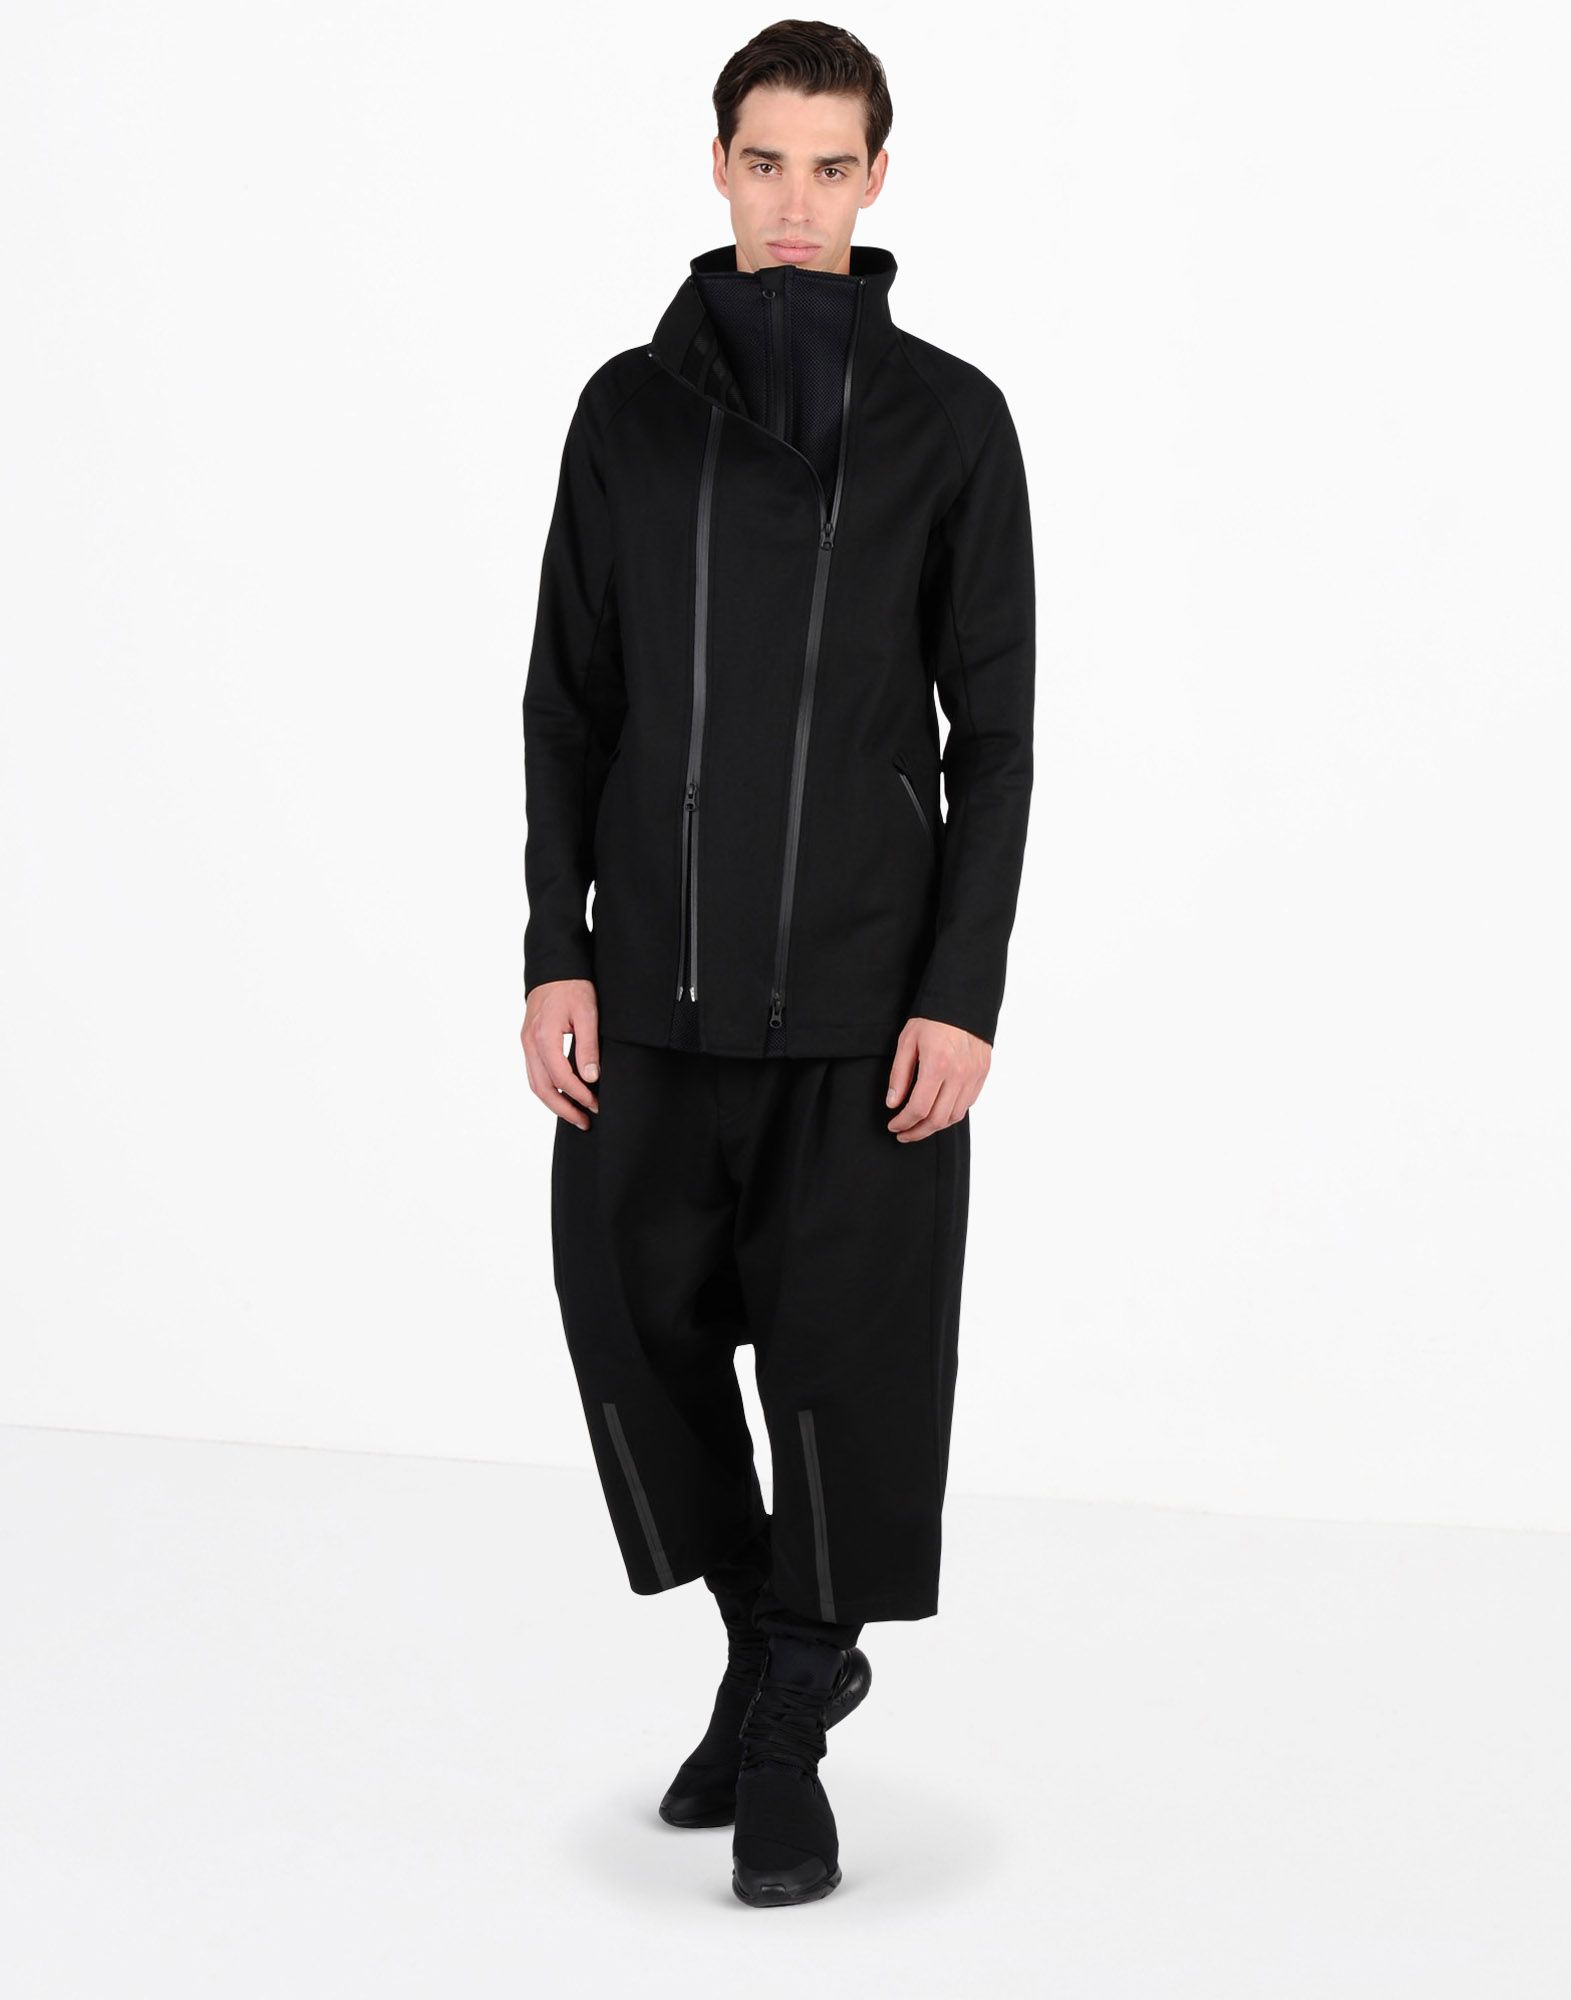 Y-3 CANVAS JACKET COATS & JACKETS man Y-3 adidas